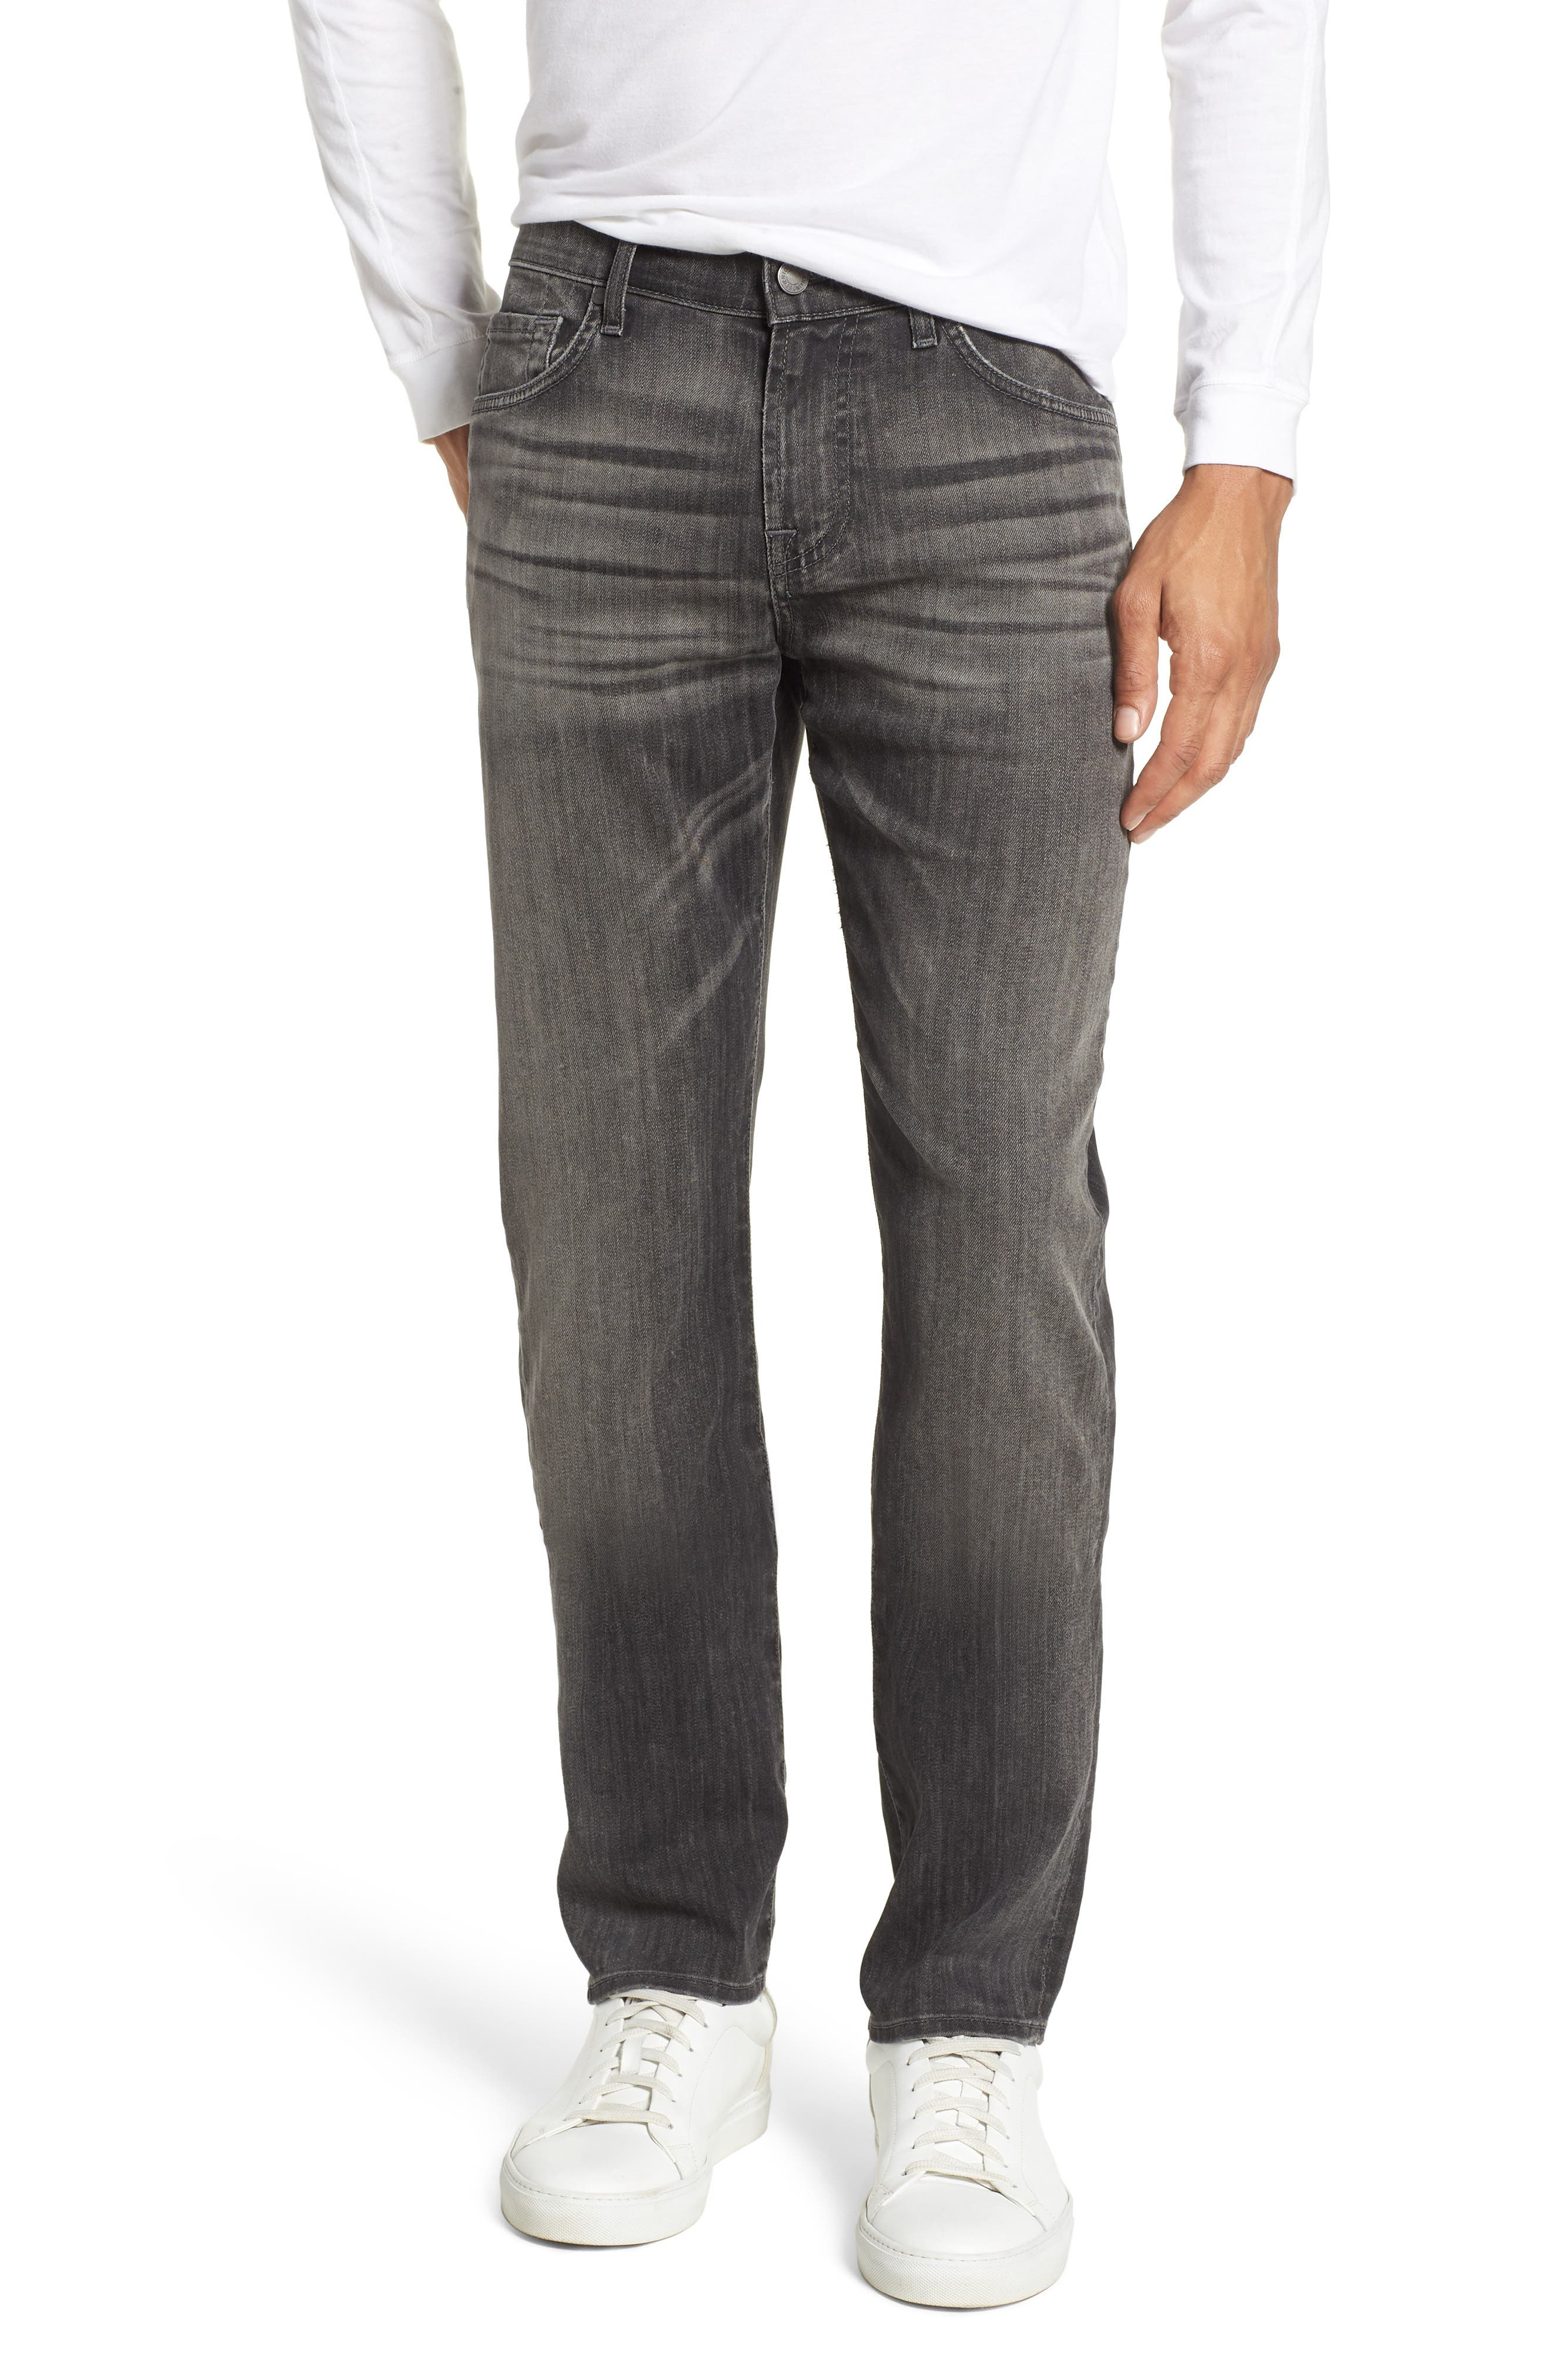 Alternate Image 1 Selected - 7 For All Mankind® The Straight Slim Straight Leg Jeans (Halide Grey)